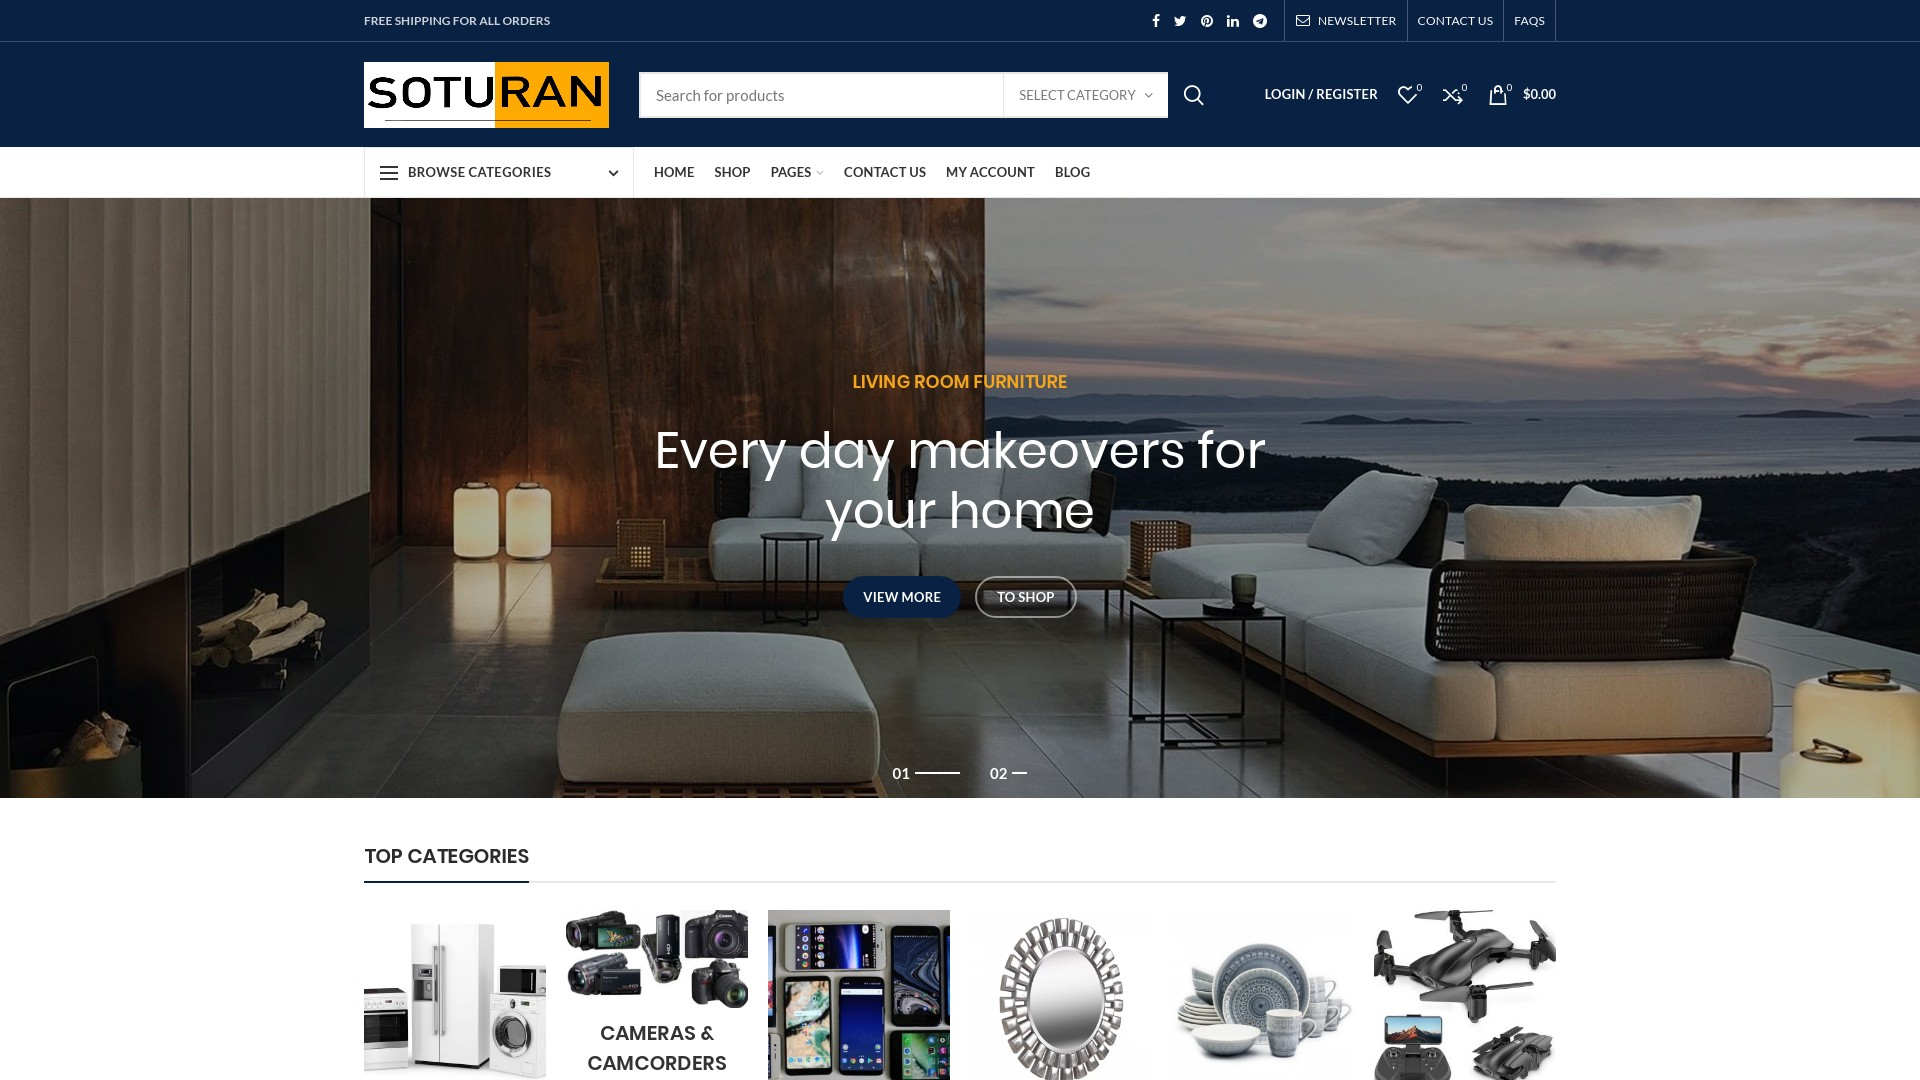 Is Soturan a Scam? See the Review of the Online Store